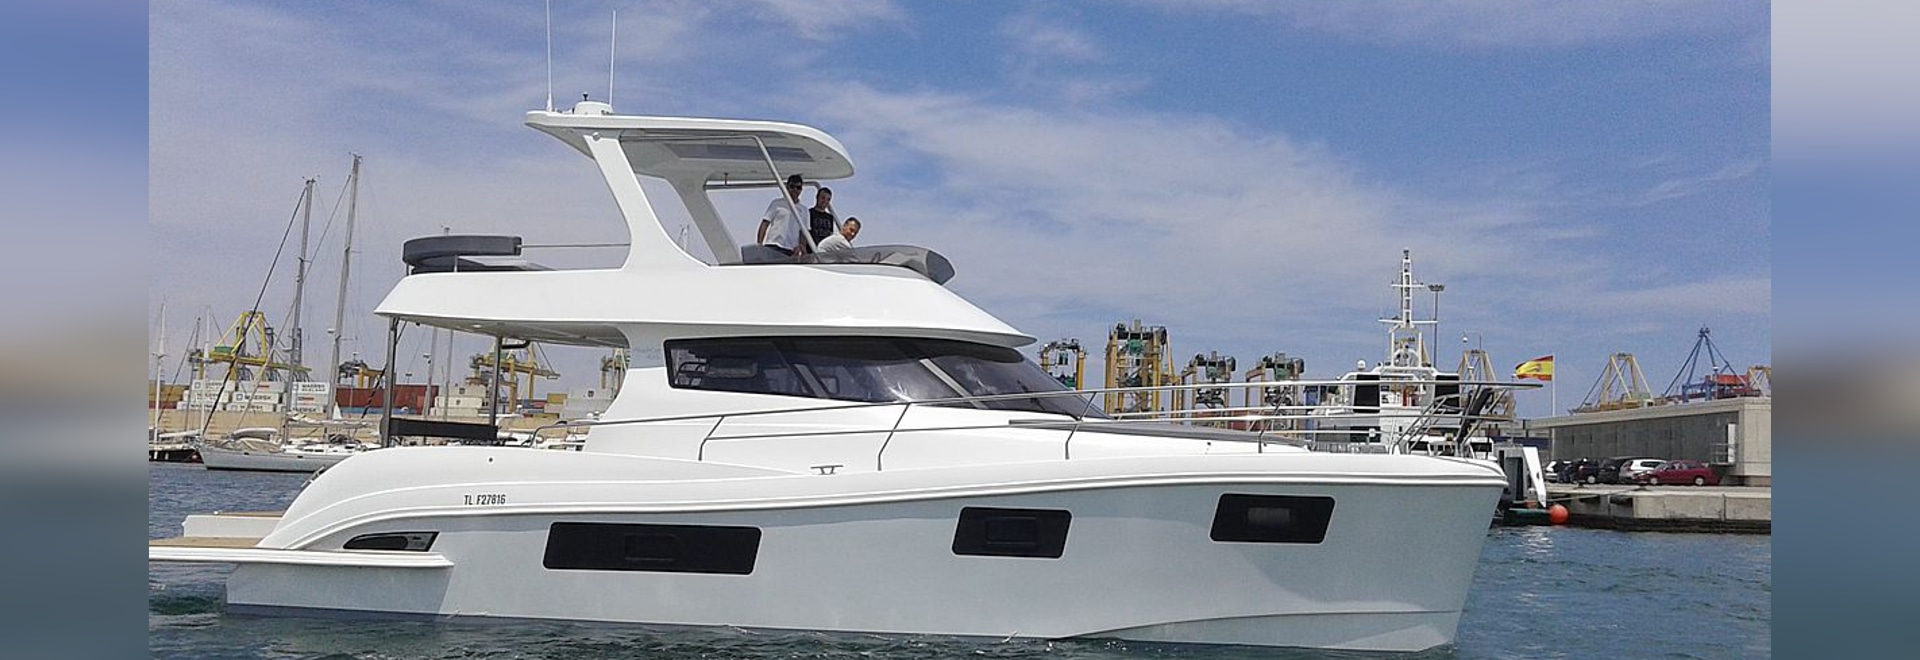 FLASH CATAMARANS WILL BE PRESENT AT THE MAIN BOAT SHOWS OF EUROPE